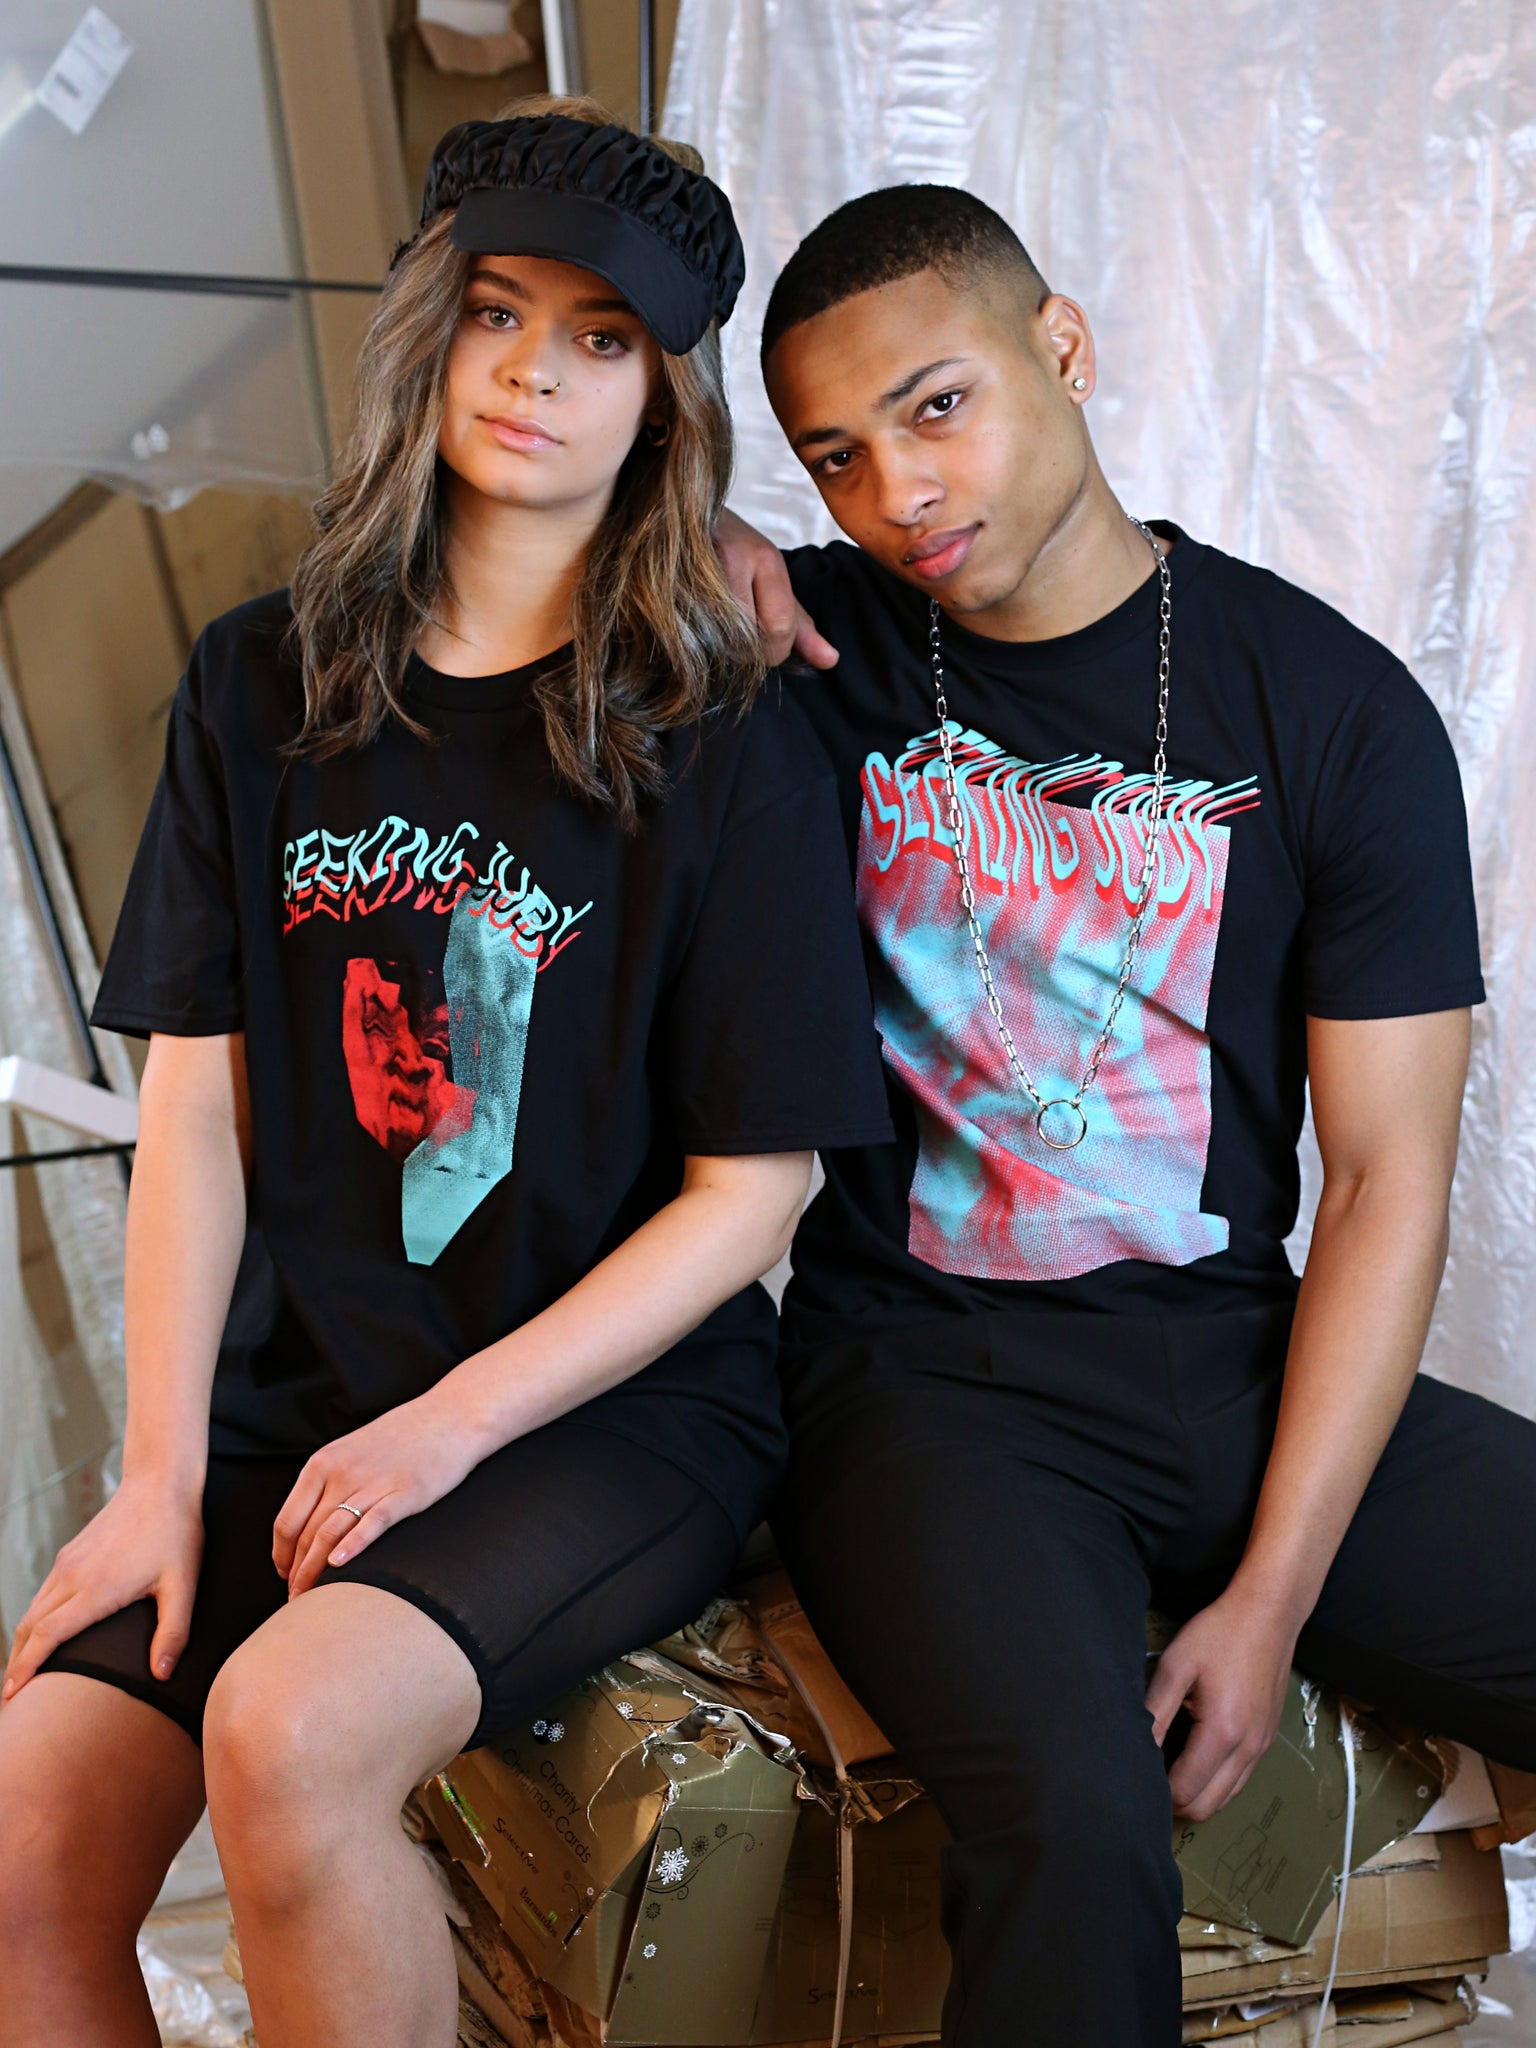 red distorted face tee